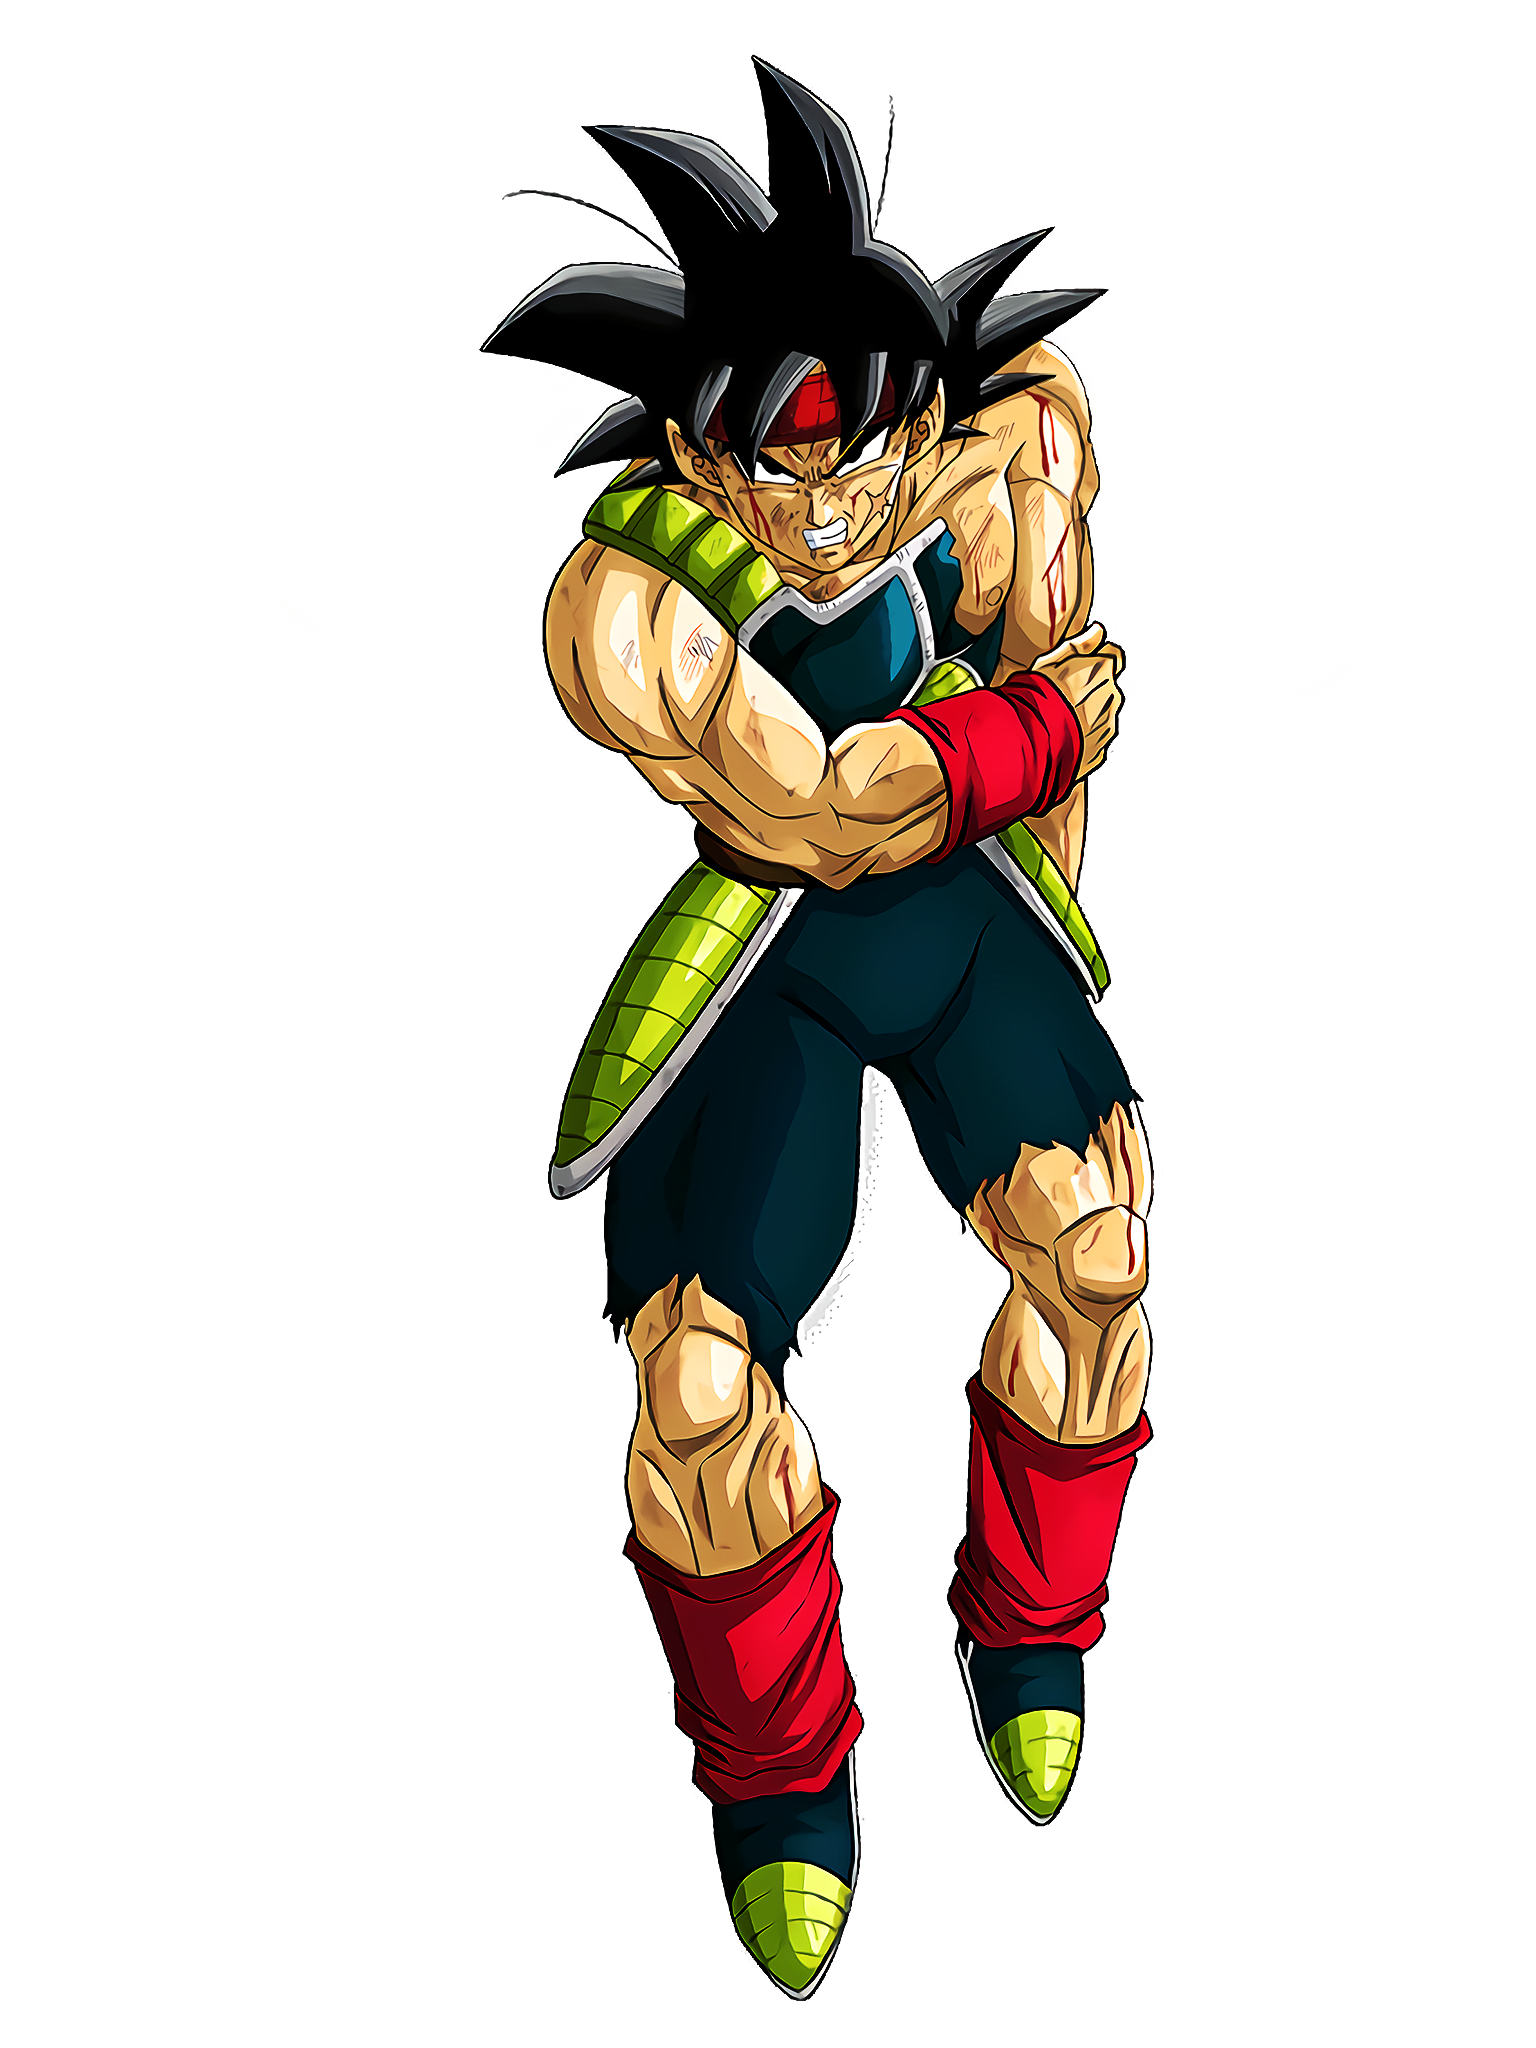 Cursed Future BardockCharacter Render (Dragon Ball Z Dokkan Battle) .png